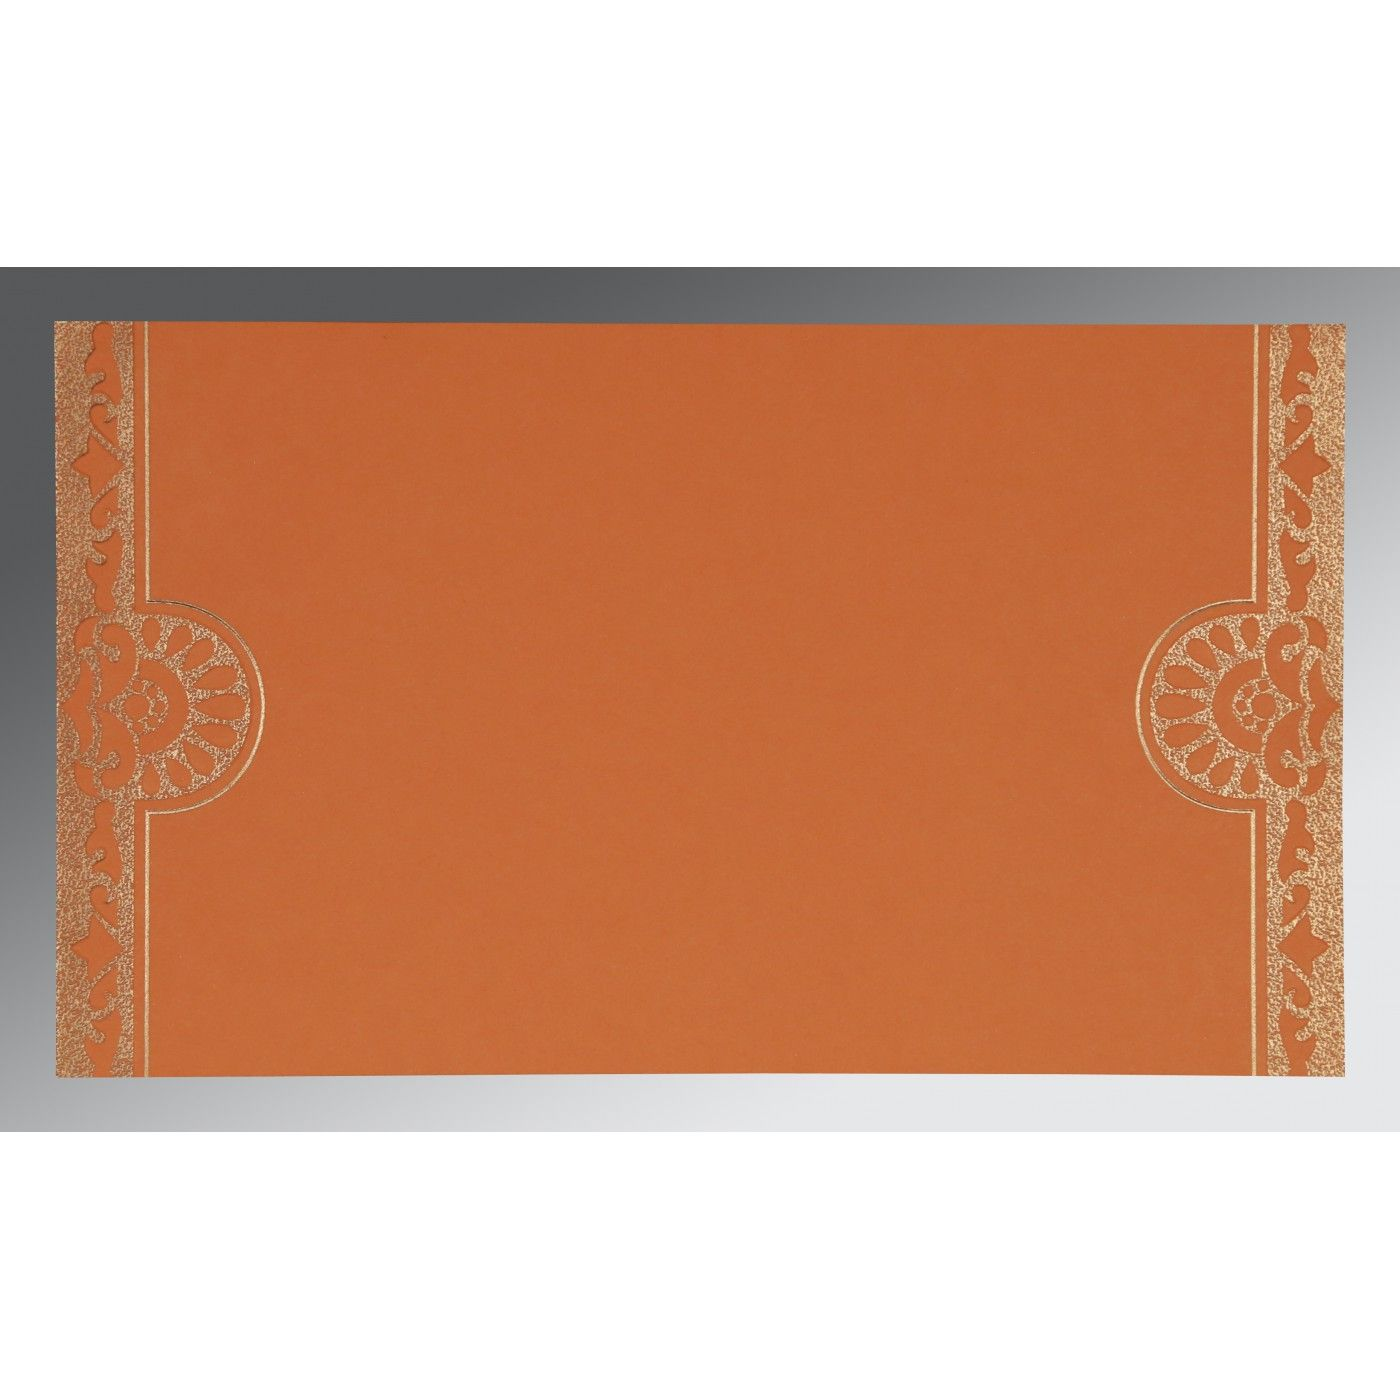 OFF-WHITE SHIMMERY FLORAL THEMED - SCREEN PRINTED WEDDING CARD : CD-8227D - IndianWeddingCards